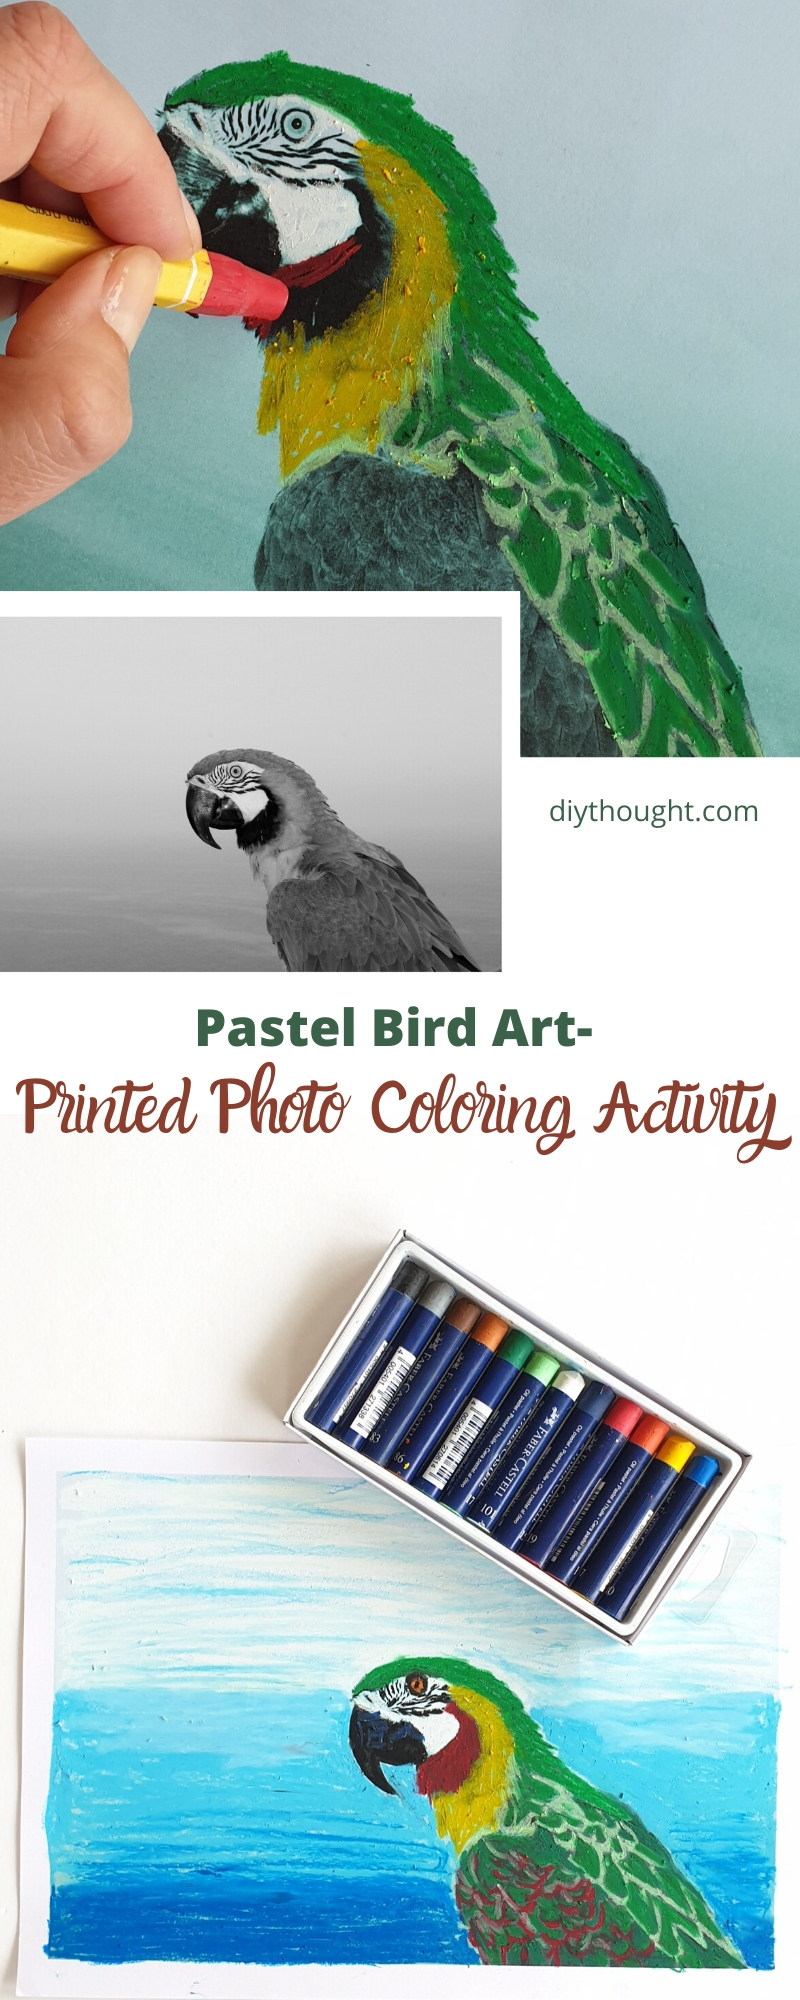 pastel bird art activity